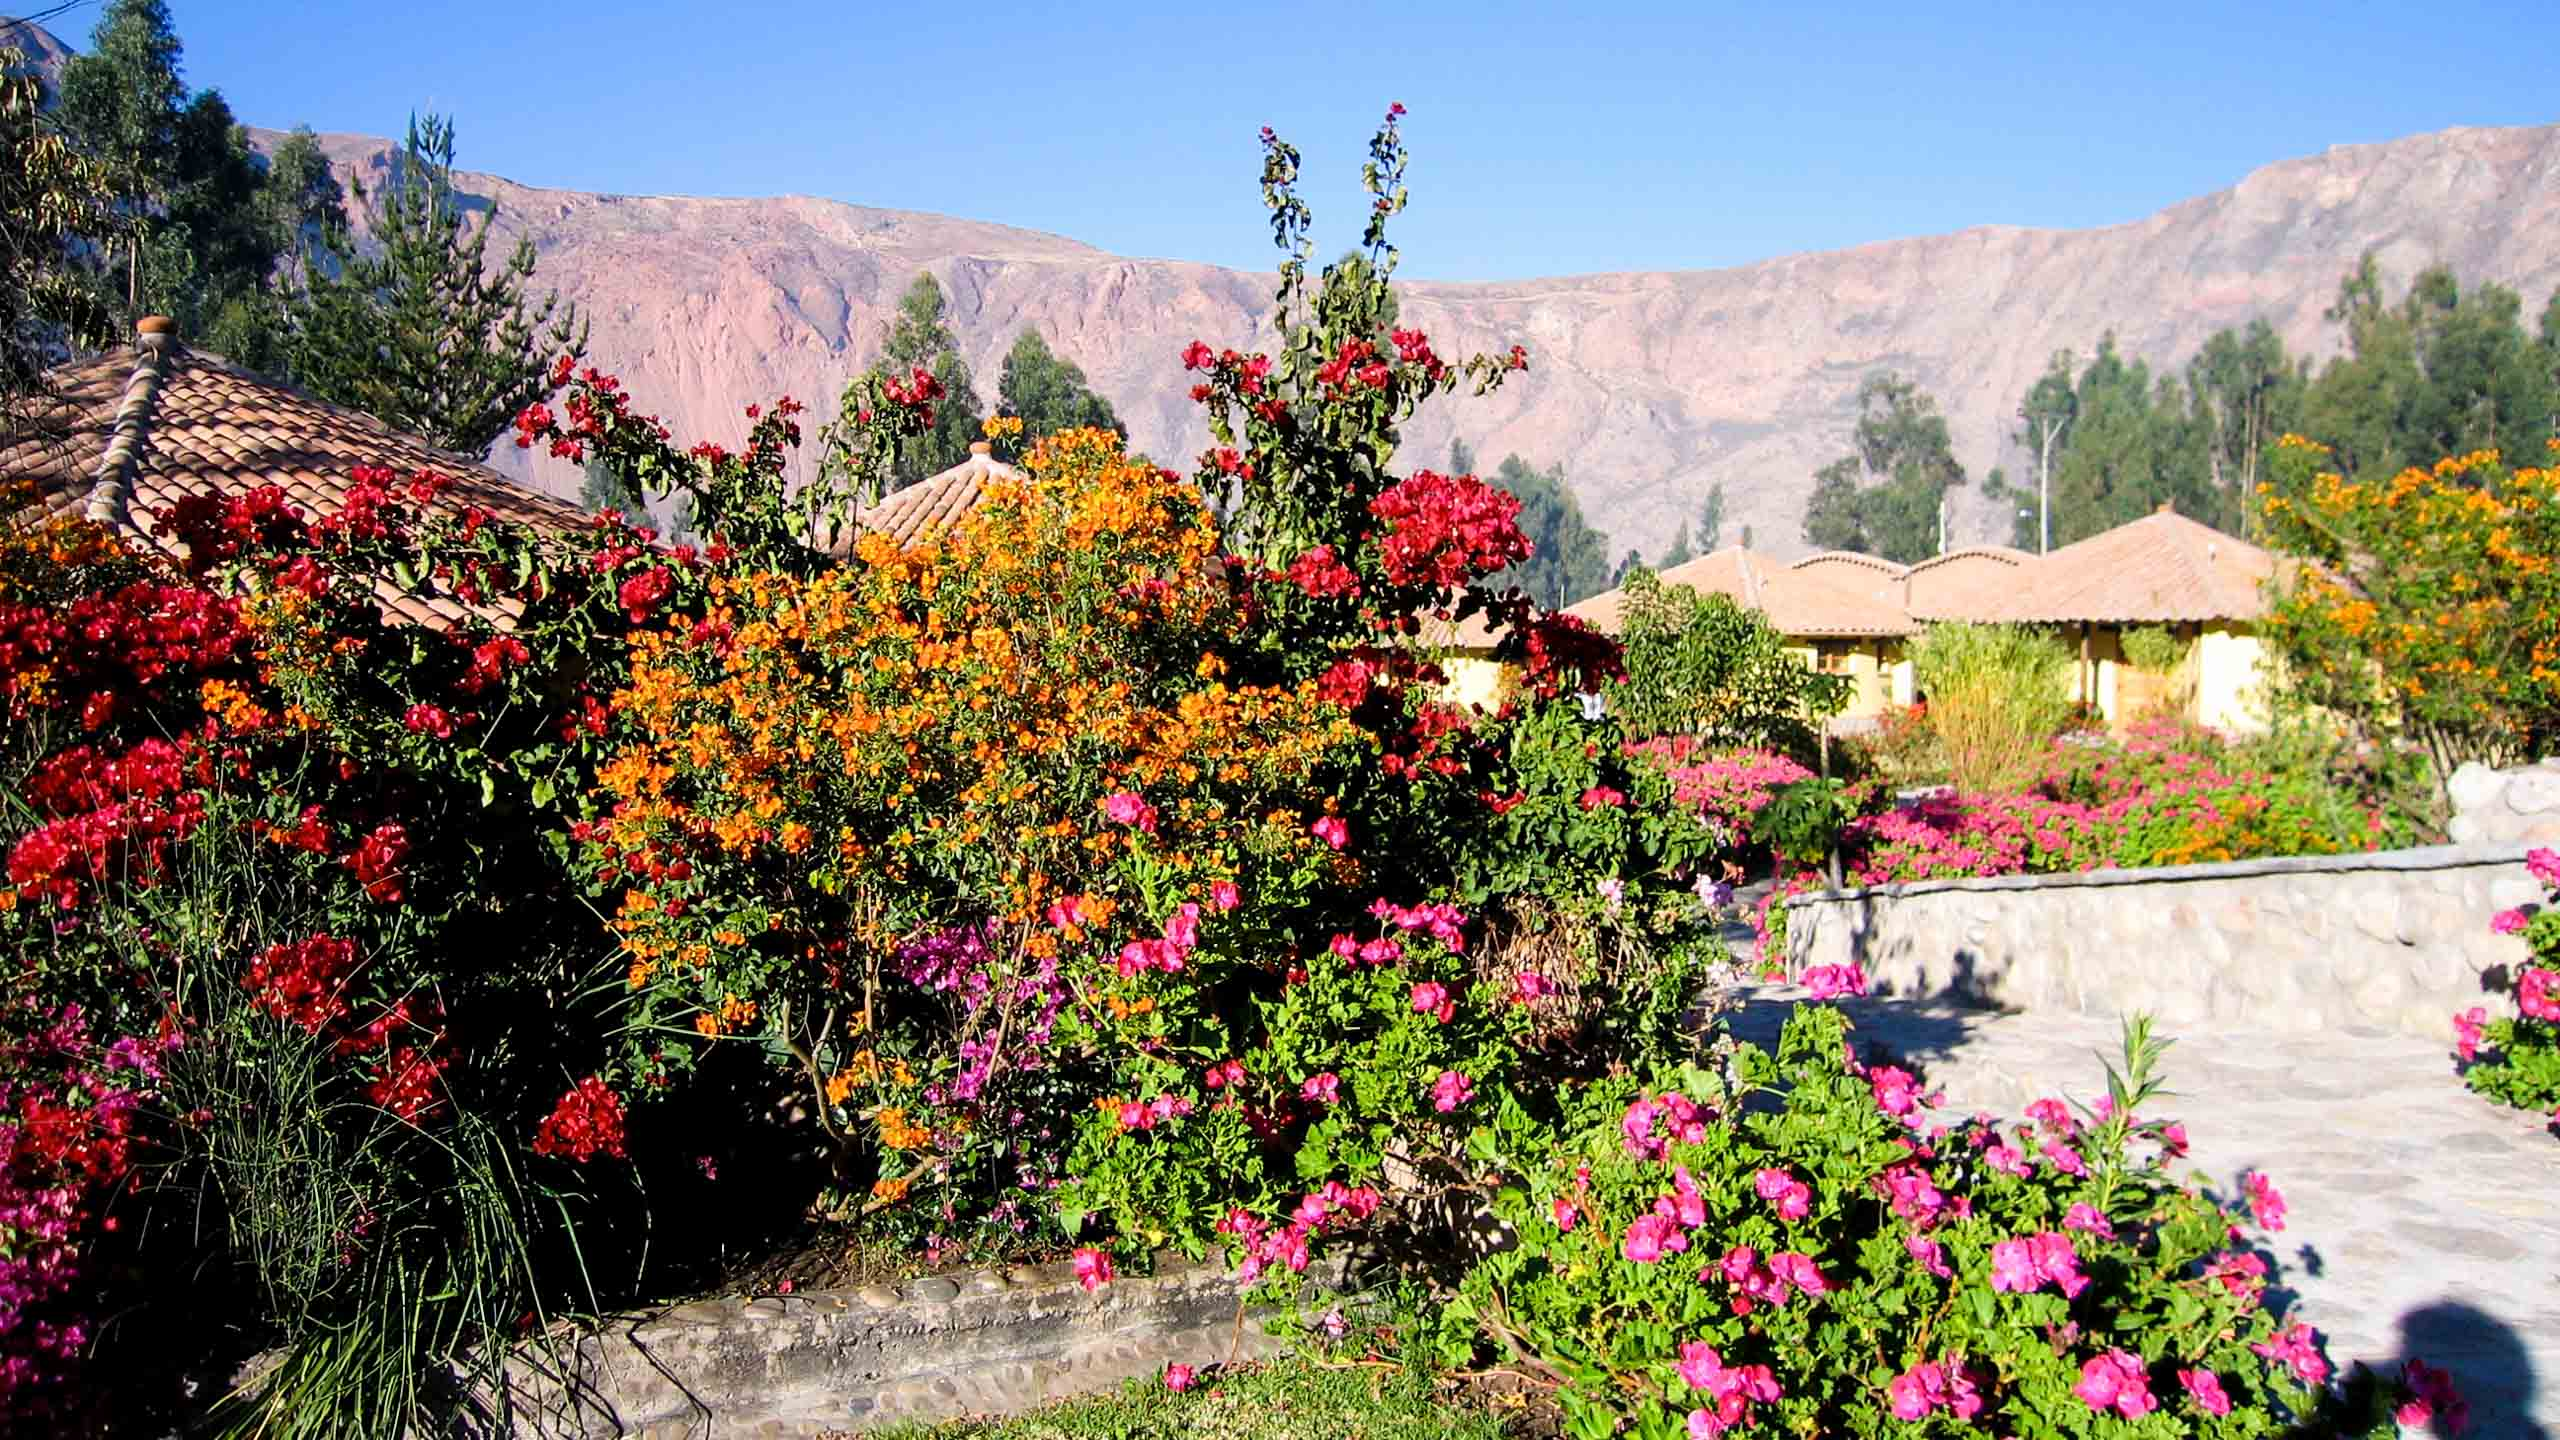 Flowers near mountain lodges in Peru